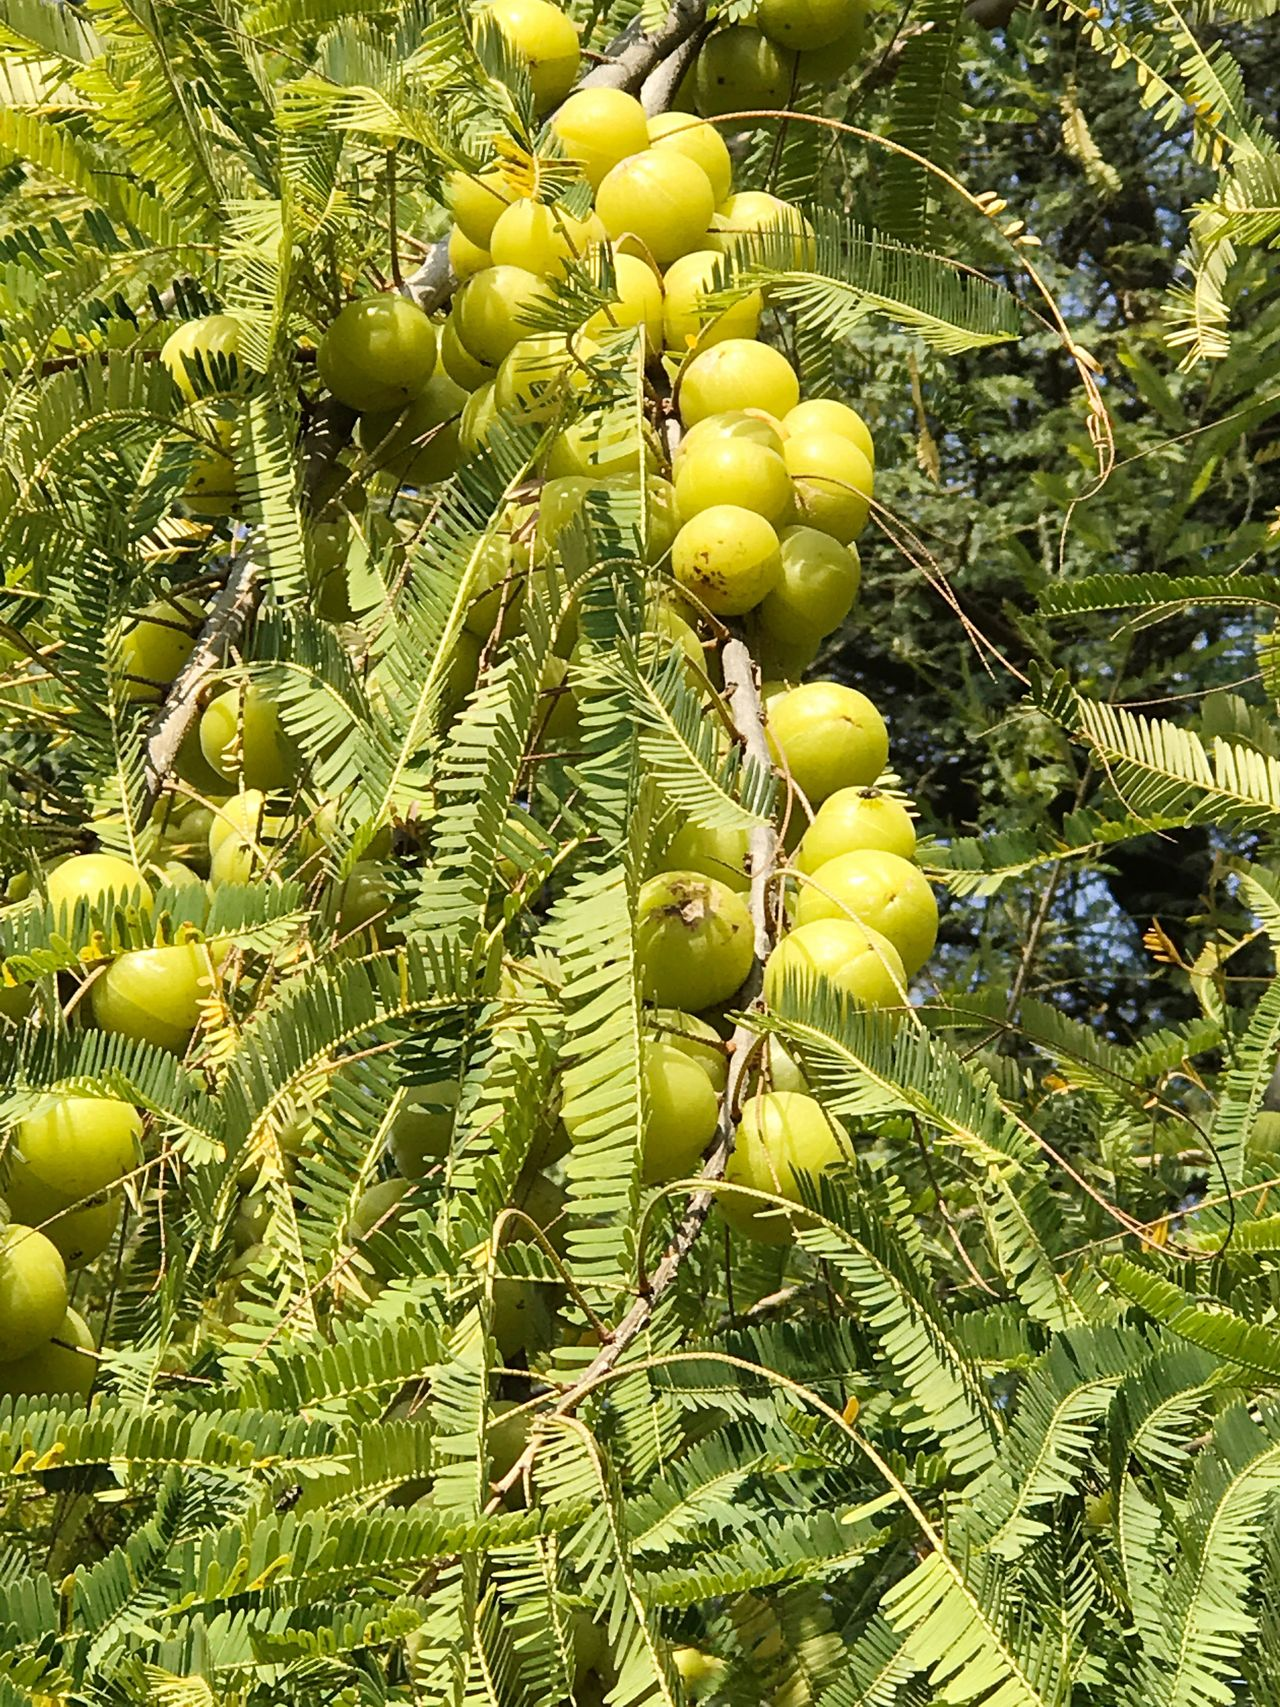 AMLA Indiangooseberry Green Color Nature Agriculture Freshness Healthy Eating Tree Branch Outdoors Close-up Day Beauty In Nature